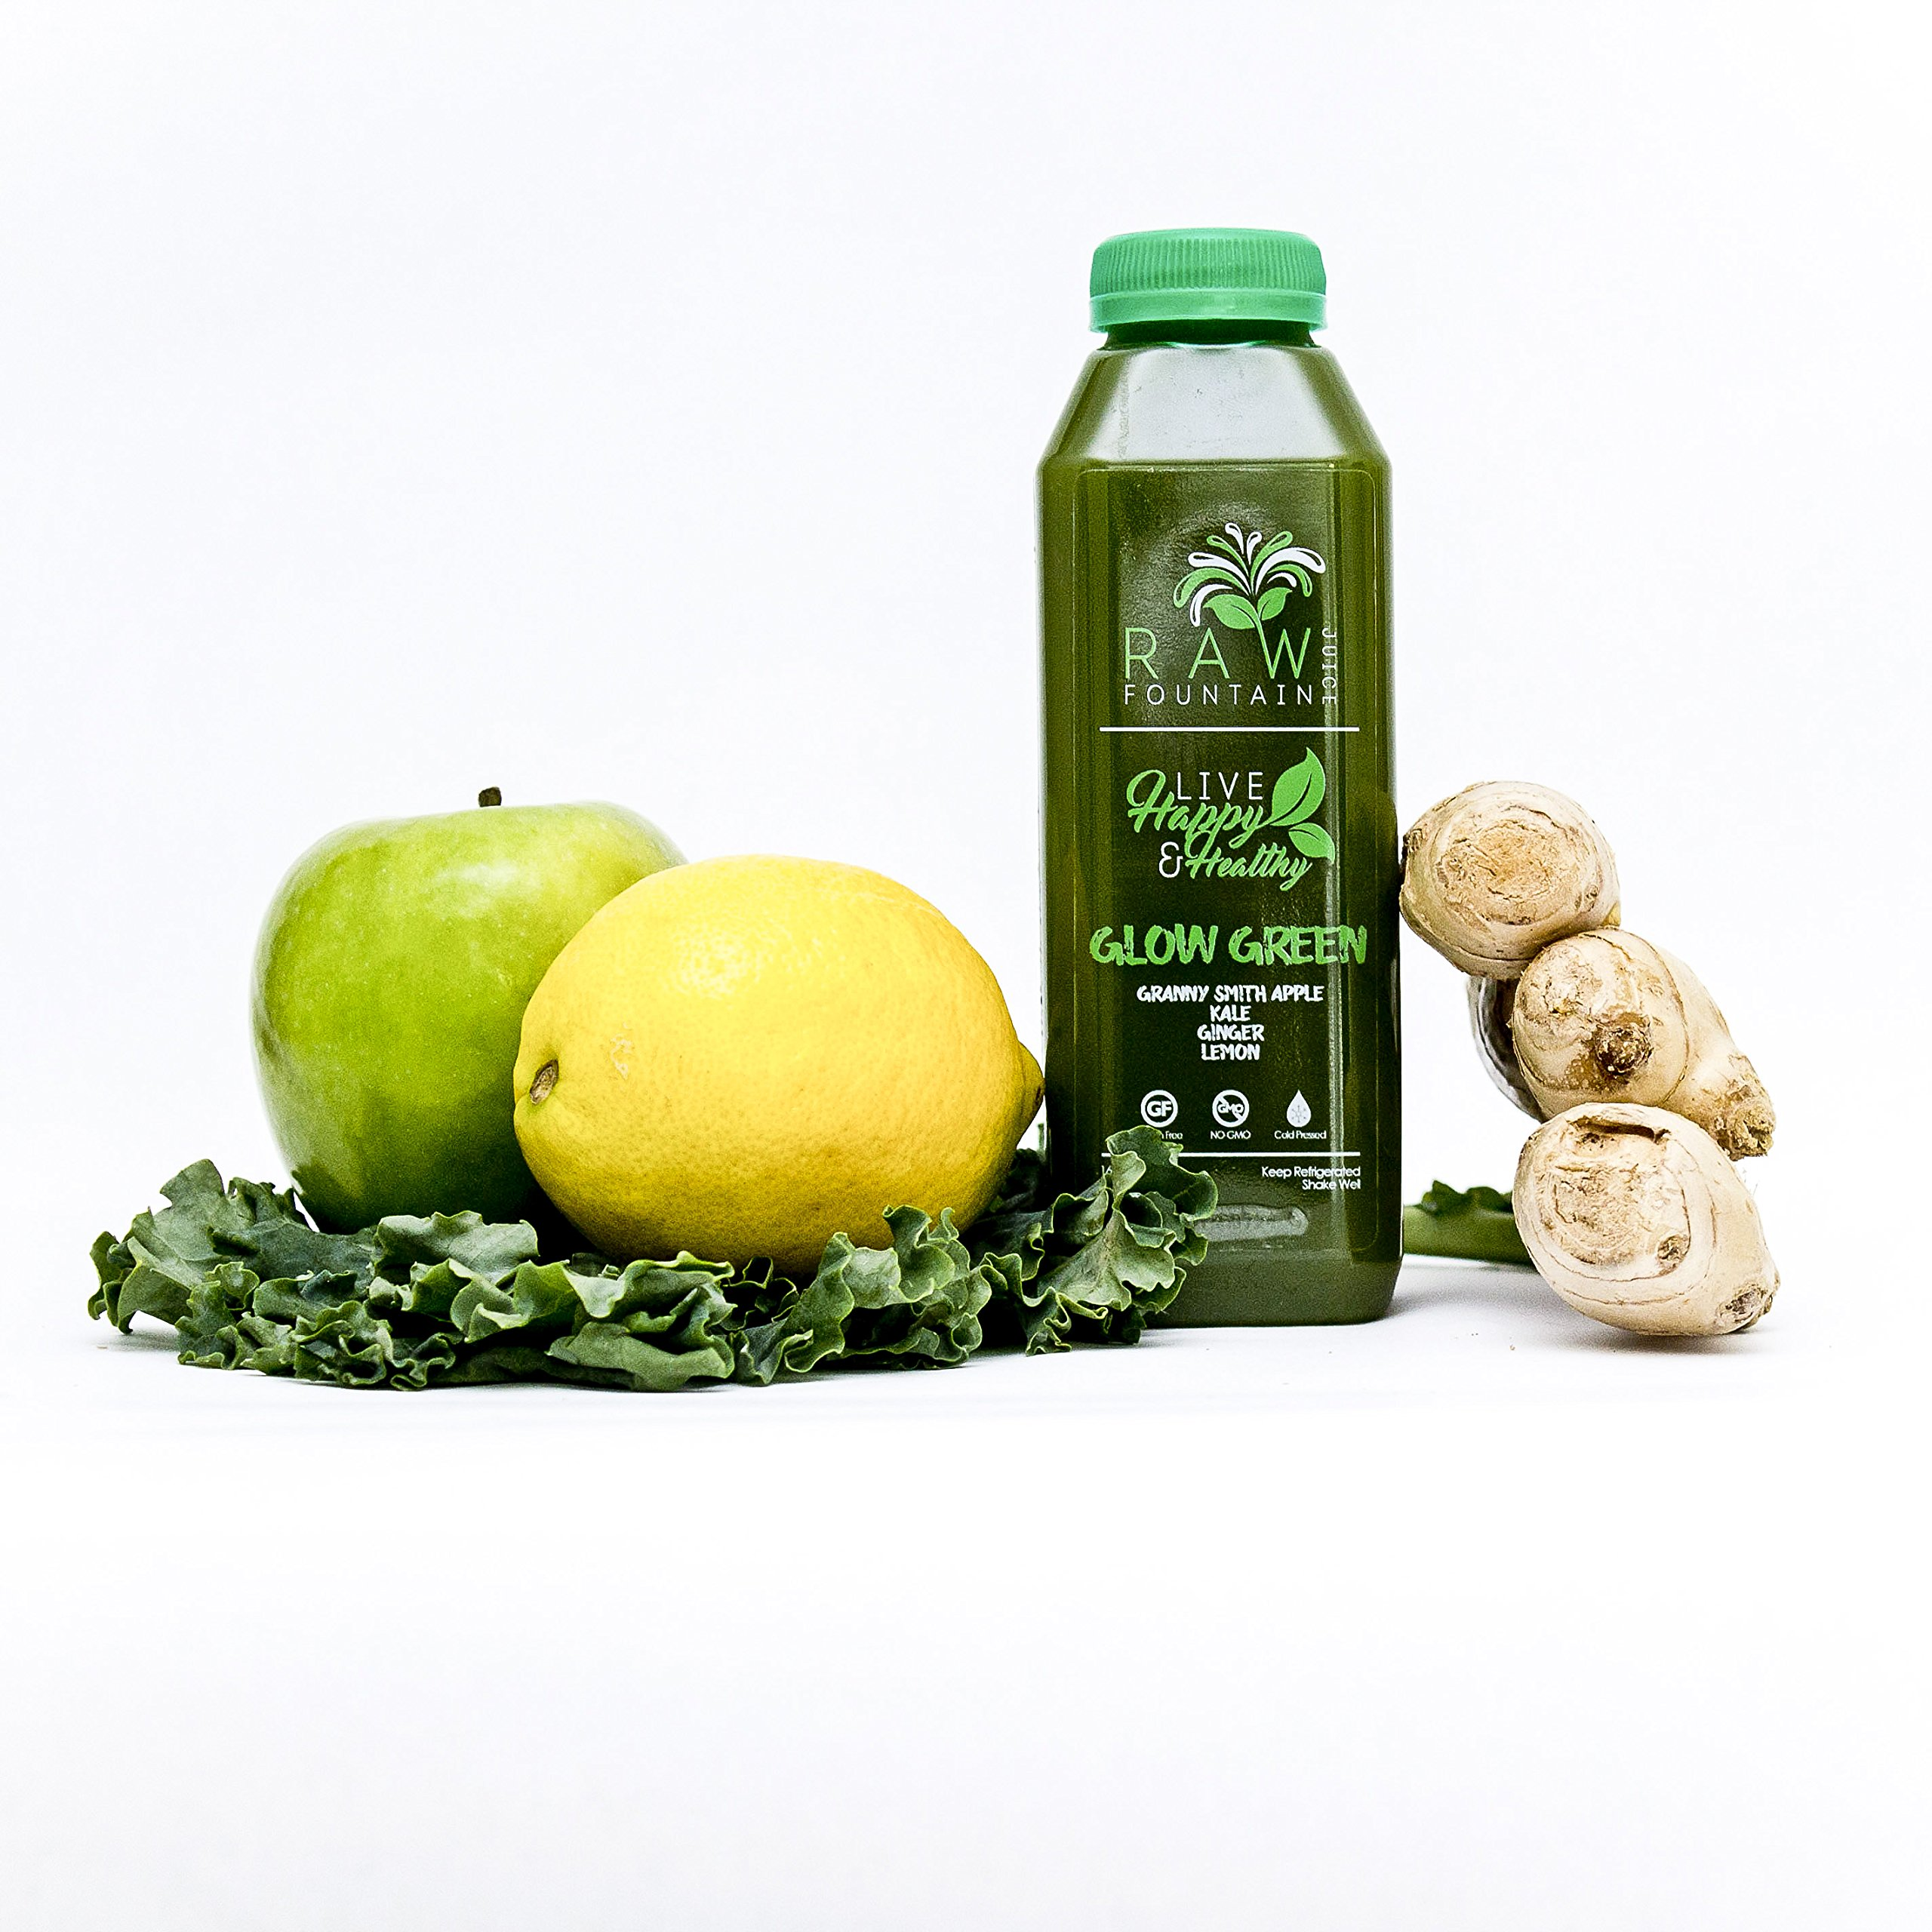 7 Day Juice Cleanse by Raw Fountain Juice - 100% Fresh Natural Organic Raw Vegetable & Fruit Juices - Detox Your Body in a Healthy & Tasty Way! - 42 Bottles (16 fl oz) + 7 BONUS Ginger Shots by Raw Threads (Image #2)